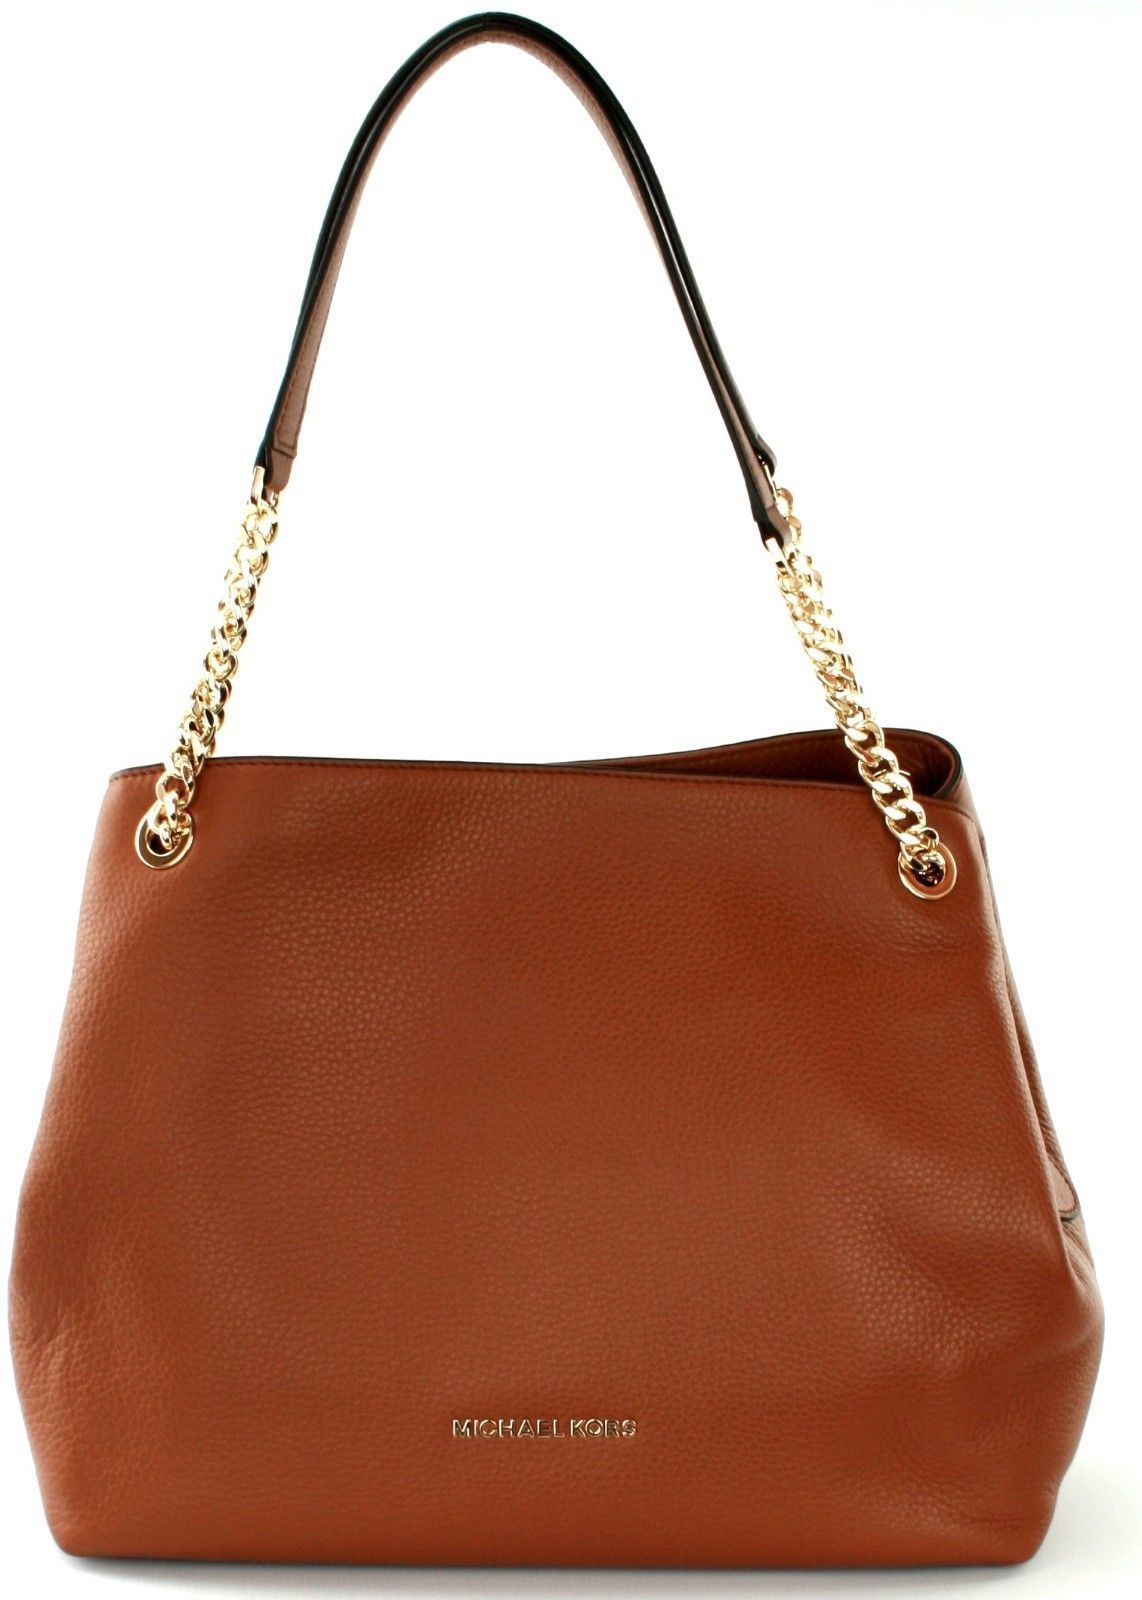 09ec6162408d Michael Kors Luggage Brown Soft Pebbled and 50 similar items